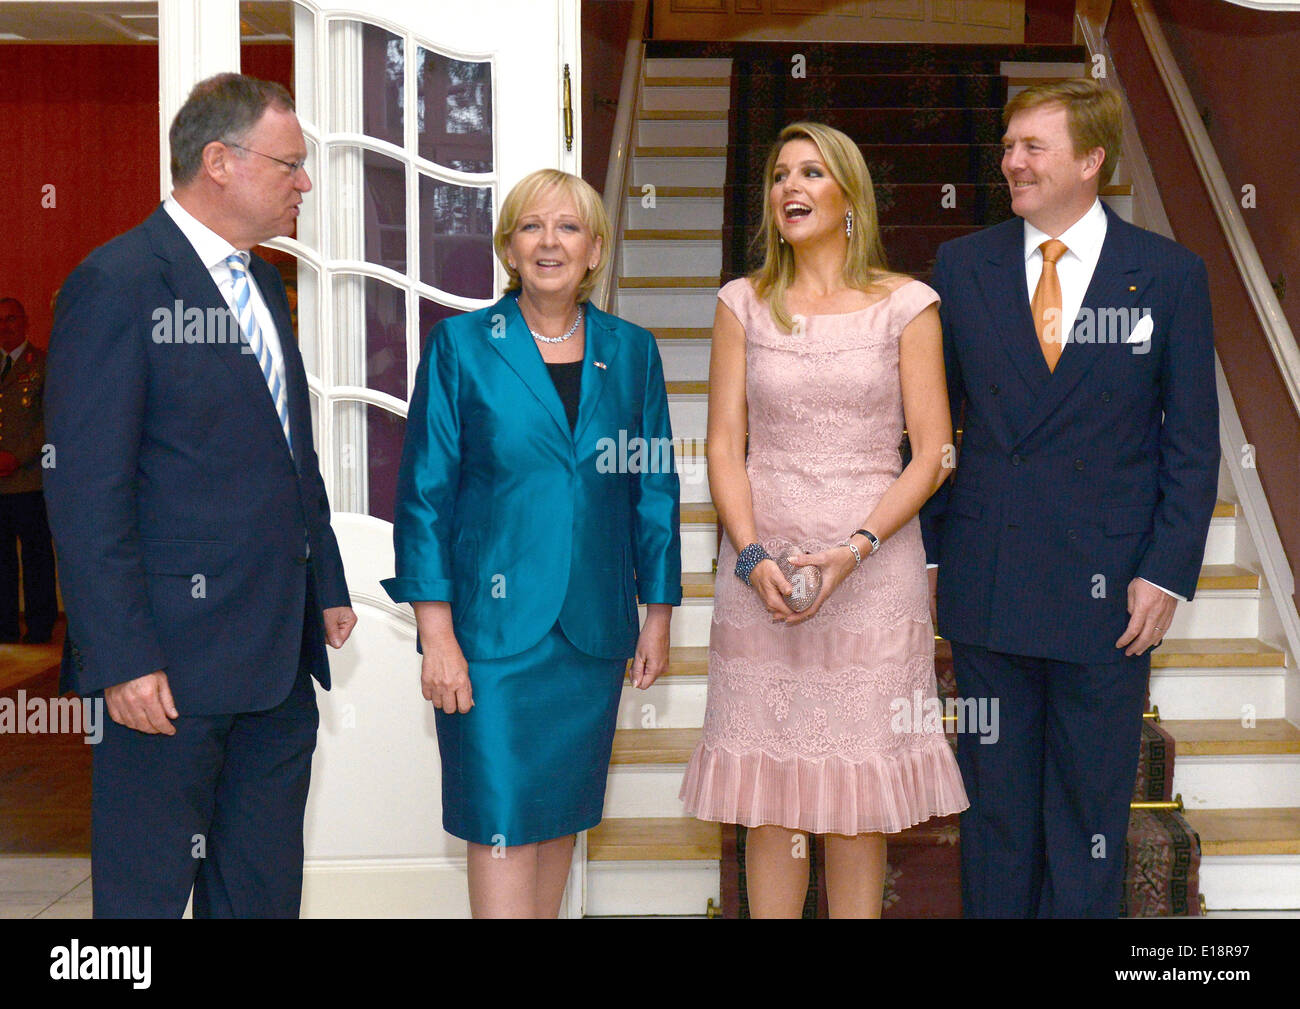 Muenster, Germany. 26th May, 2014. North Rhine-Westphalia's Premier Hannelore Kraft (SPD, 2nd L) and Lower Saxony's Premier Stephan Weil (SPD, L) welcome King Willem-Alexander of the Netherlands (R) and Queen Maxima of the Netherlands (2nd R), for a dinner event at Wilkinghege Palace in Muenster, Germany, 26 May 2014. The Dutch royal couple is on a two-day visit to Germany. Photo: Caroline Seidel/dpa/Alamy Live News - Stock Image